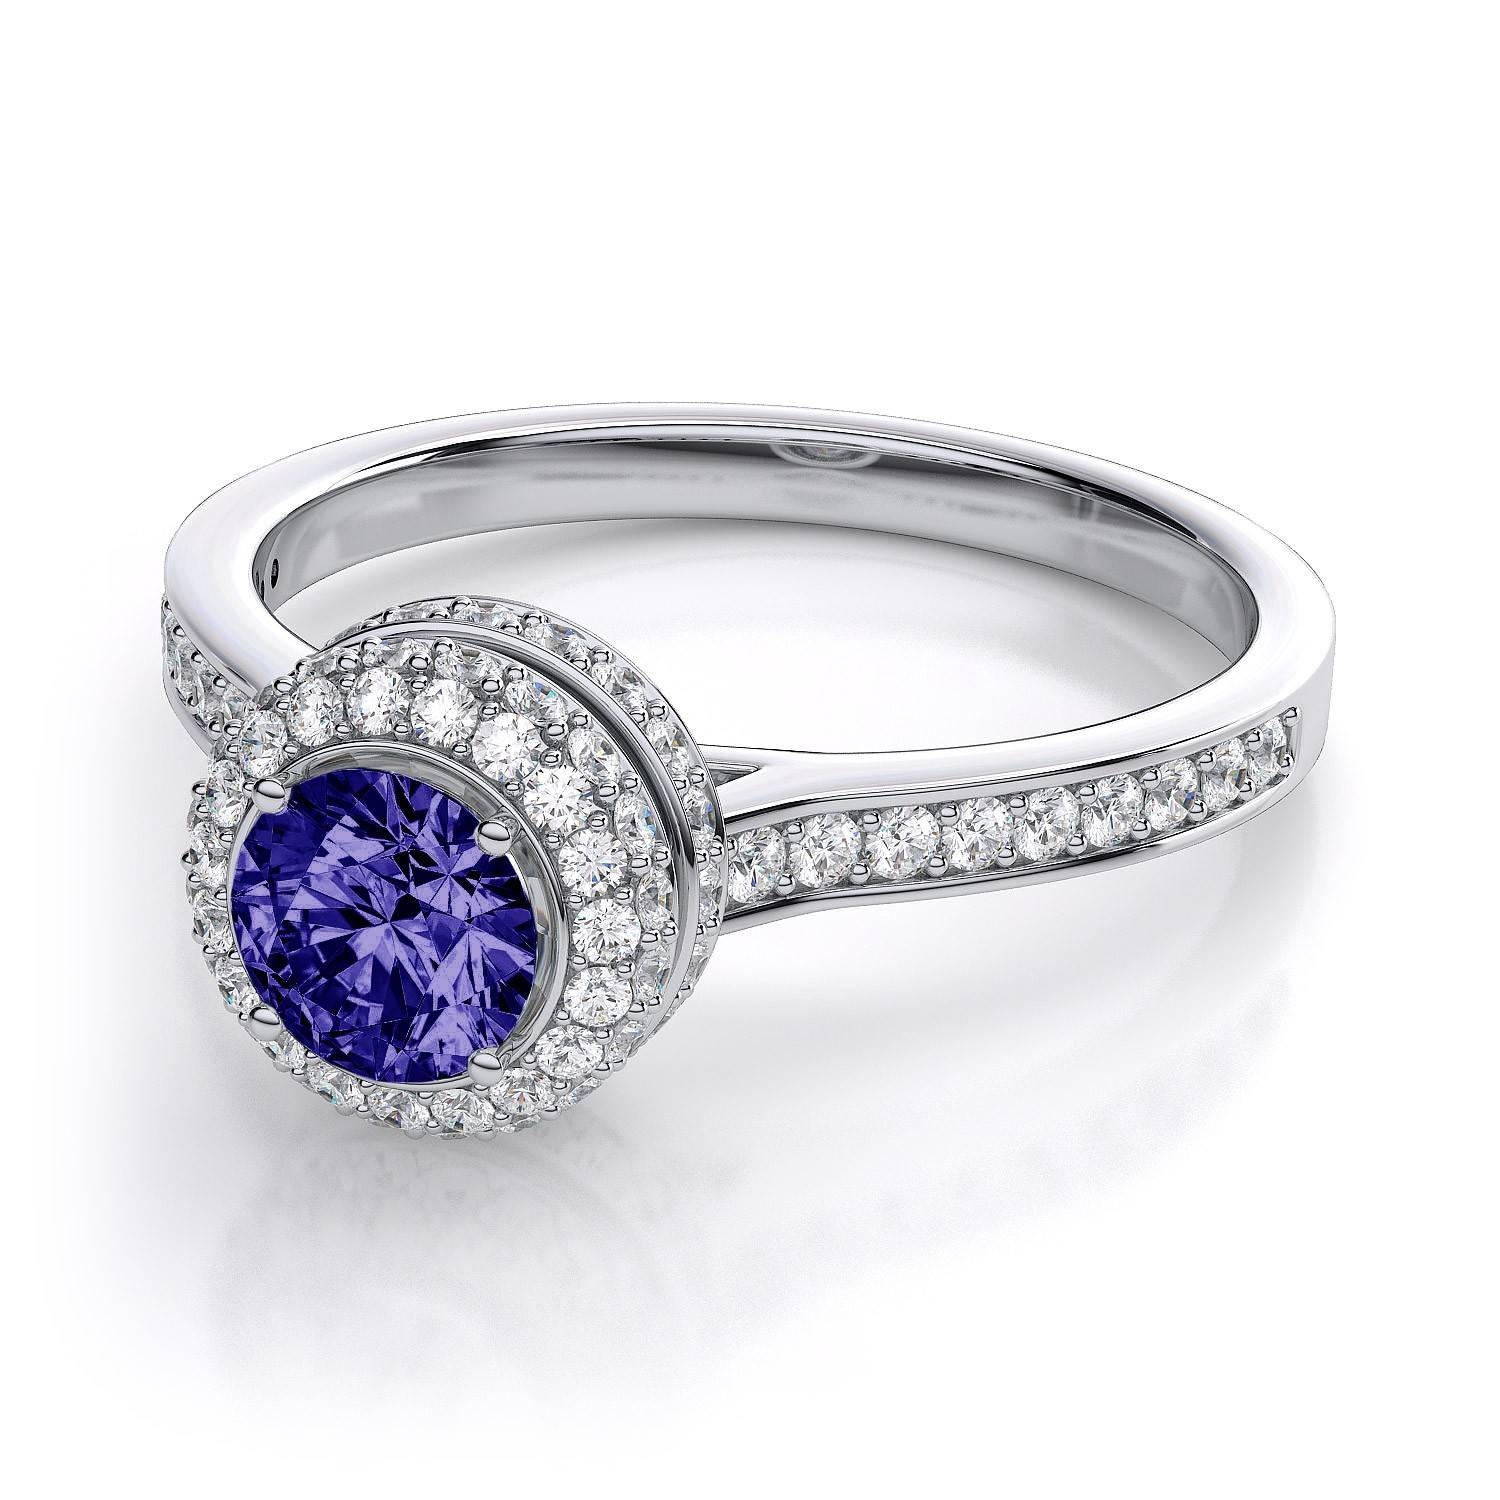 Cirque Halo Tanzanite And Diamond Engagement Ring In 14K White Gold Regarding Tanzanite Engagement (Gallery 11 of 15)